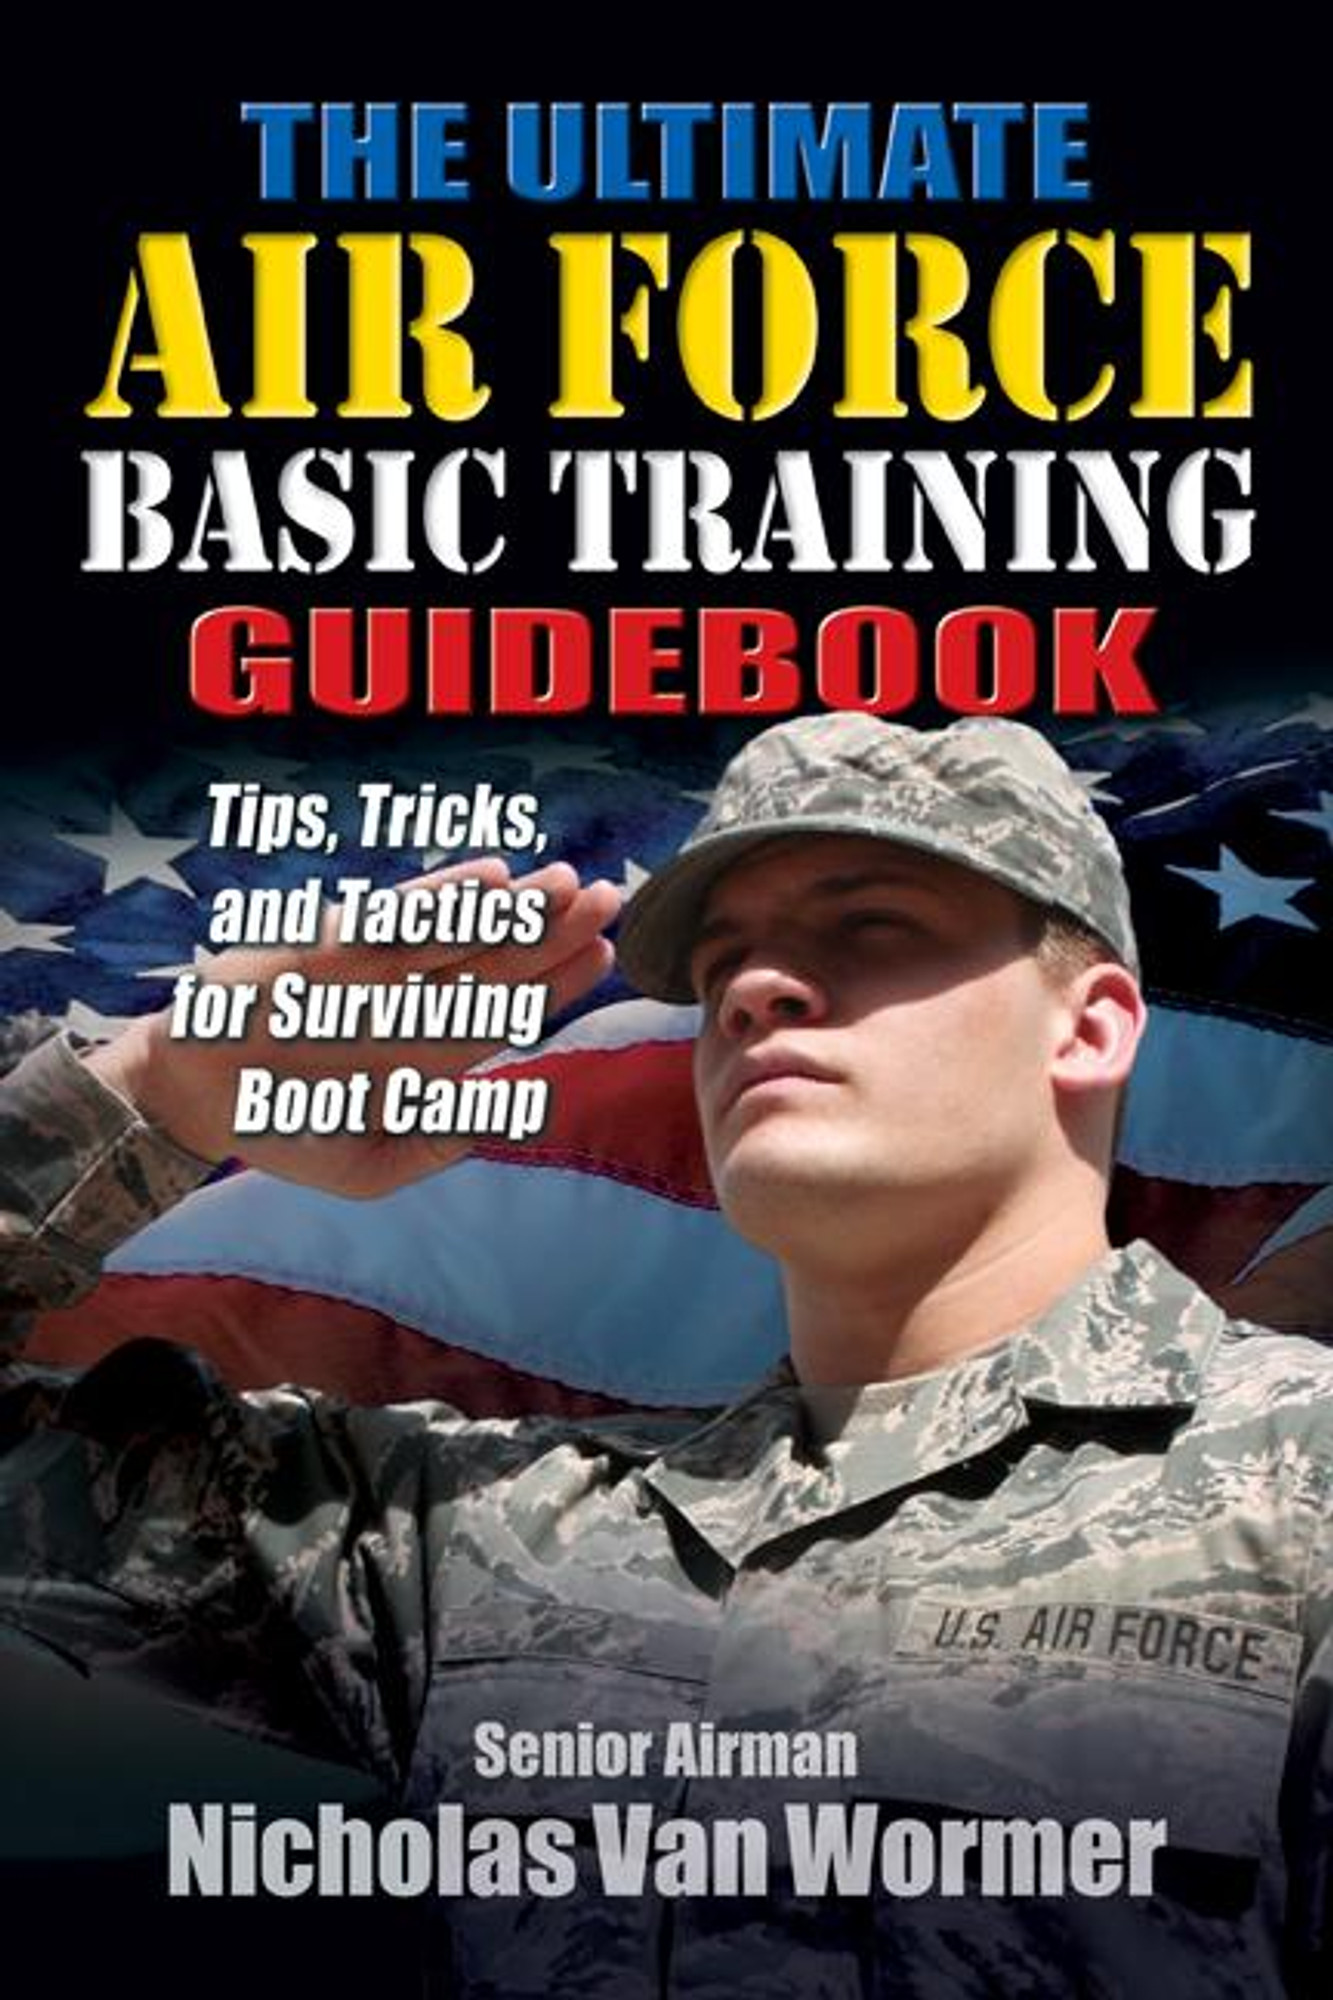 The Ultimate Air Force Basic Training Guidebook: Tips, Tricks, and Tactics  for Surviving Bootcamp